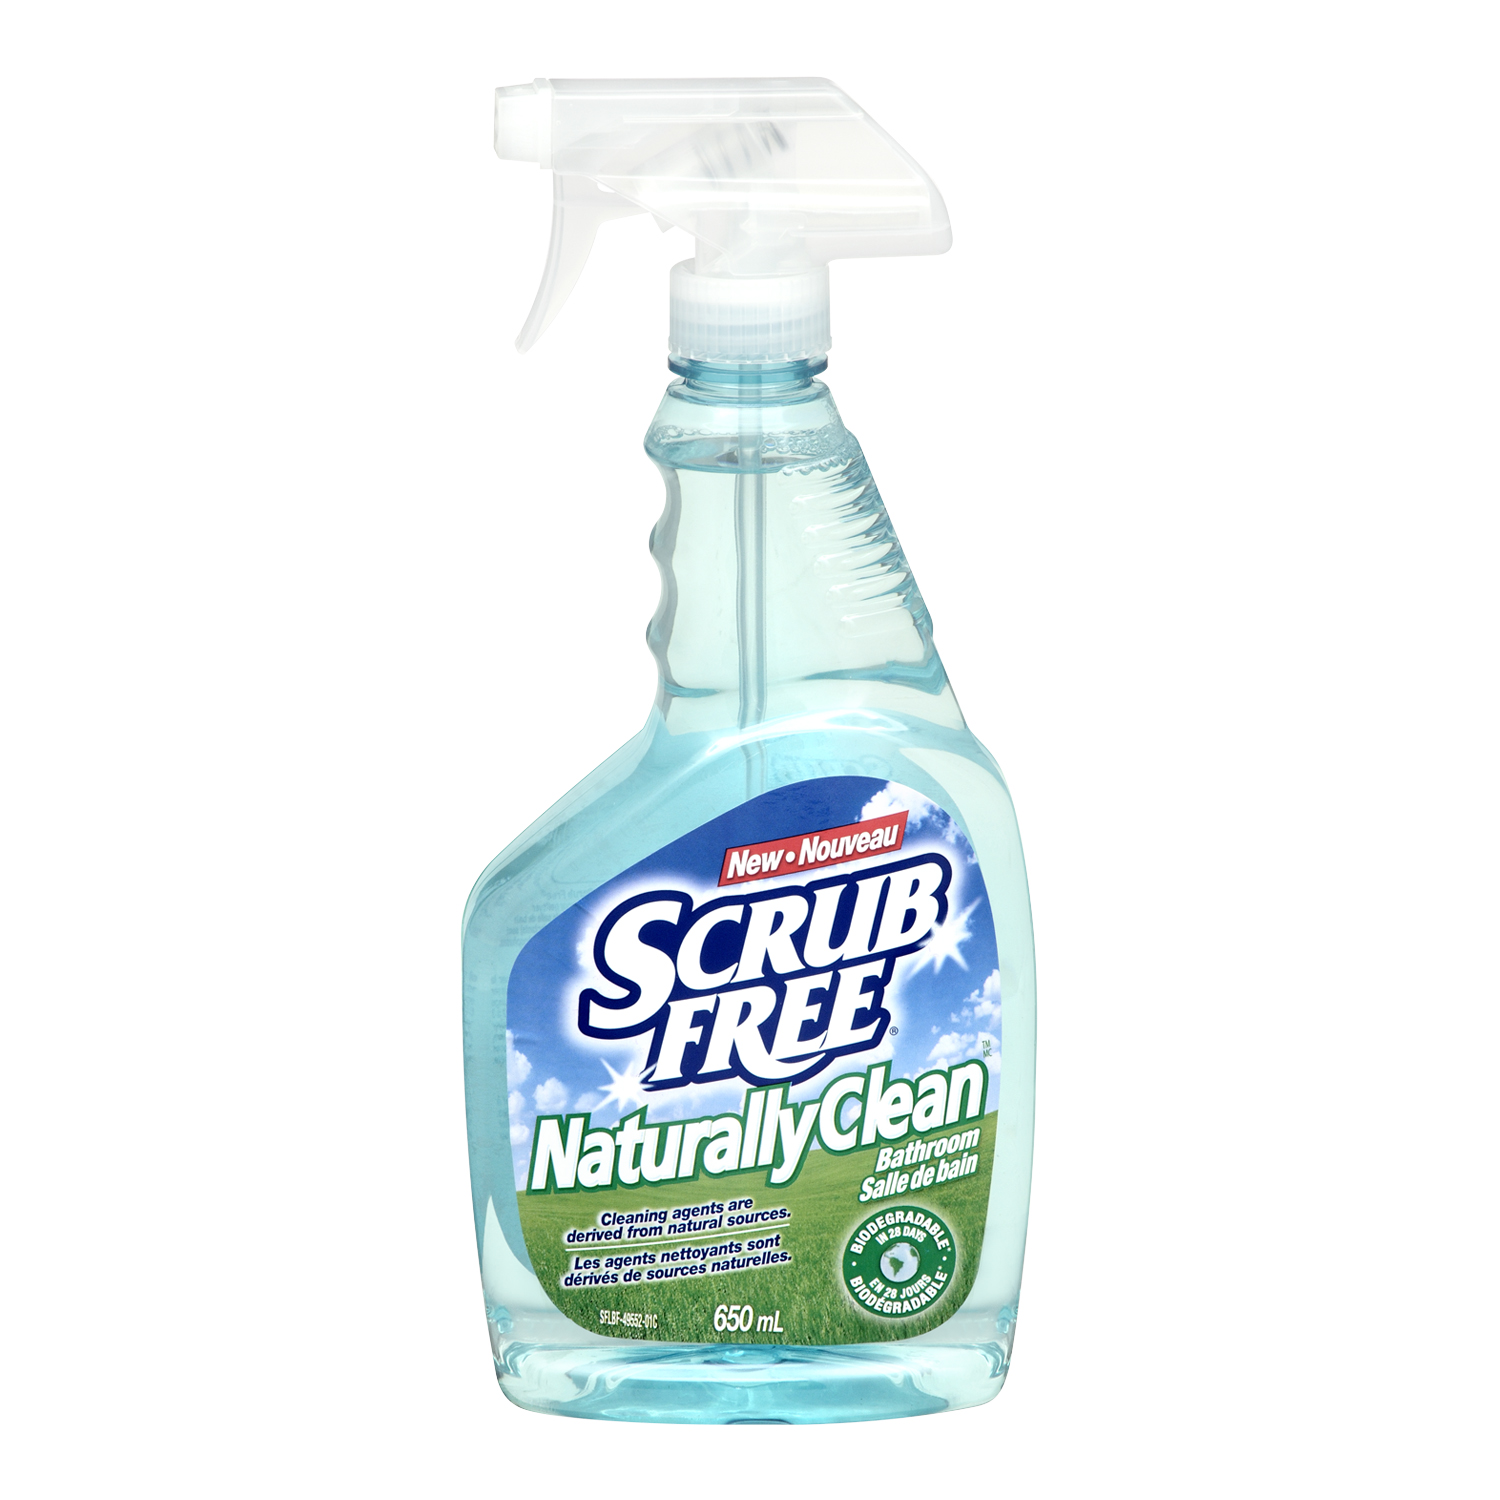 Arm & Hammer Scrub Free Naturally Clean Bathroom Cleaner